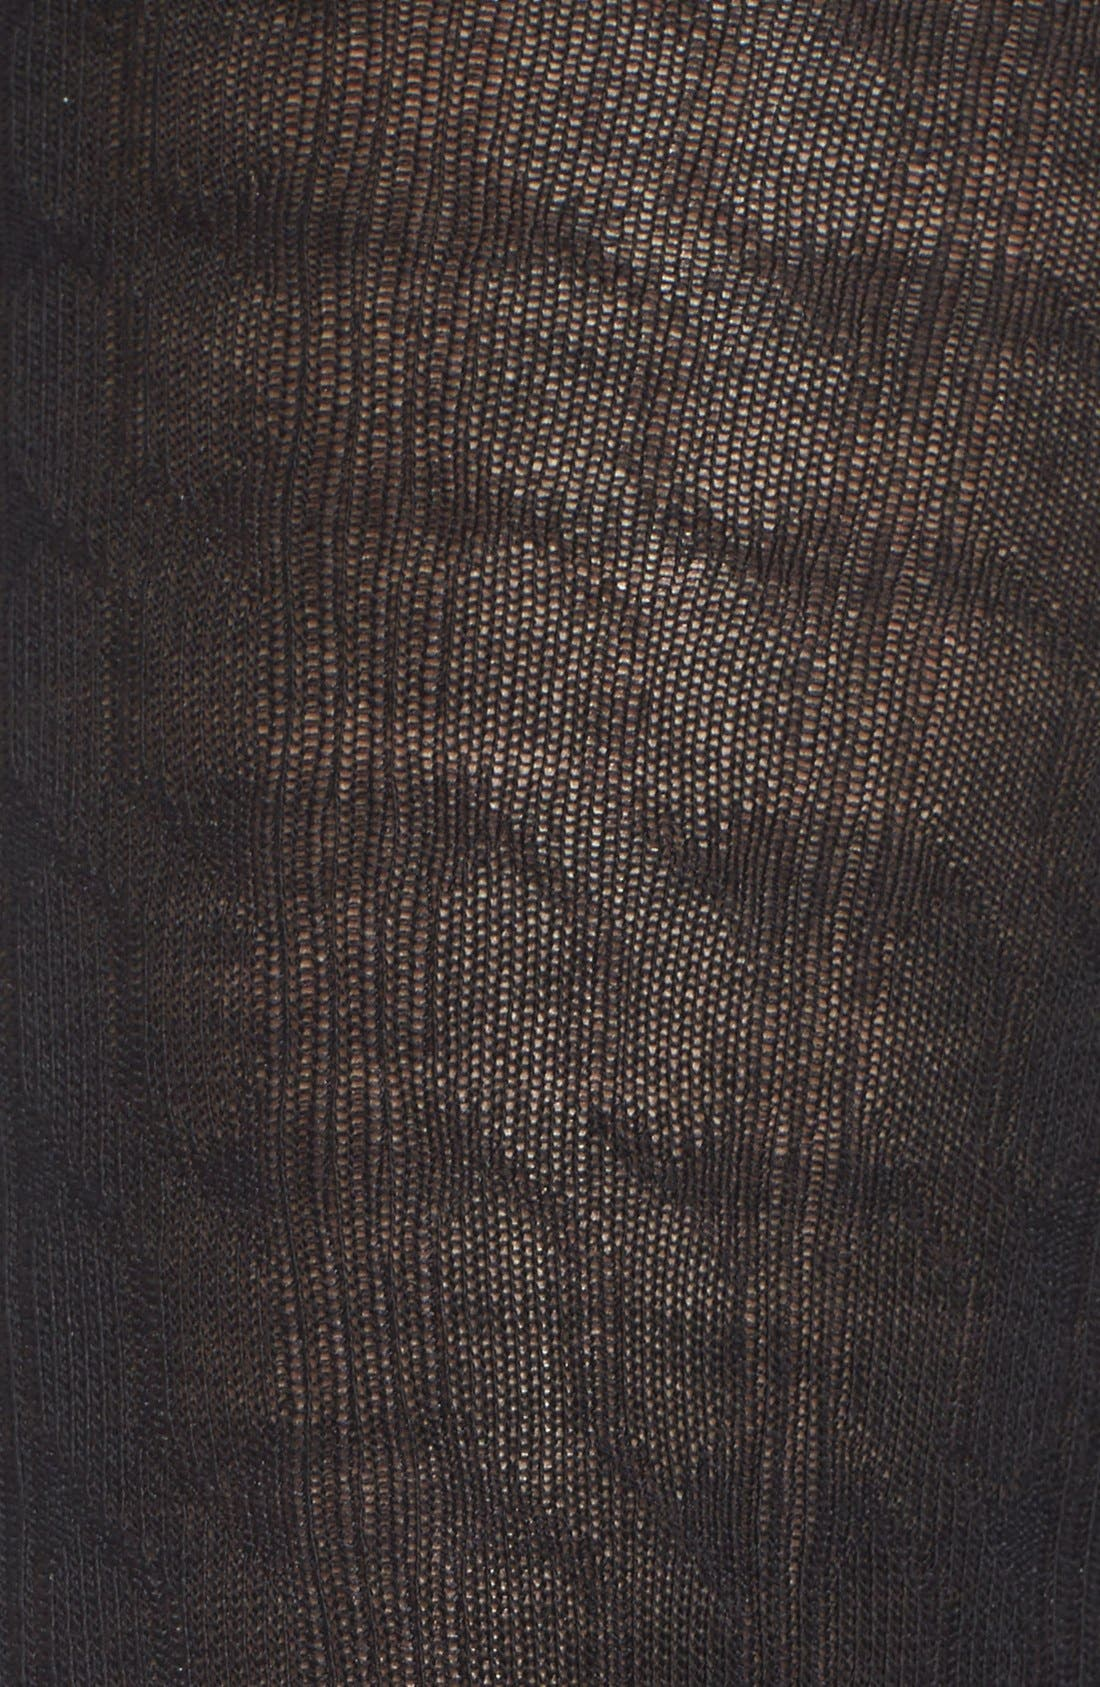 Cable Knit Tights,                             Alternate thumbnail 2, color,                             001